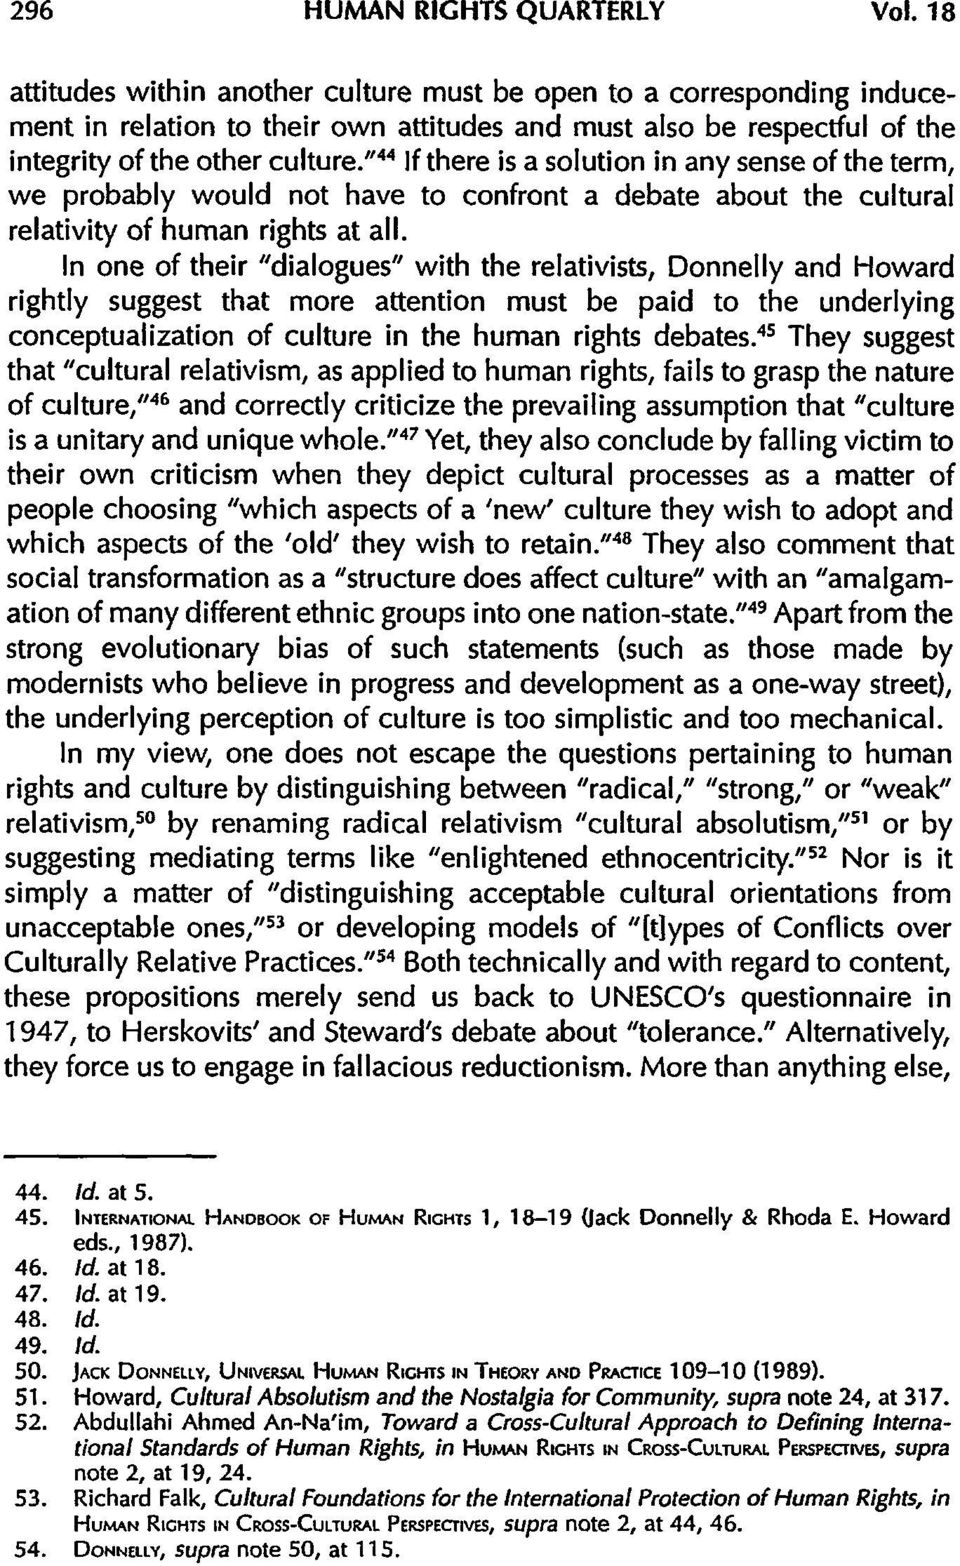 """44 If there is a solution in any sense of the term, we probably would not have to confront a debate about the cultural relativity of human rights at all."